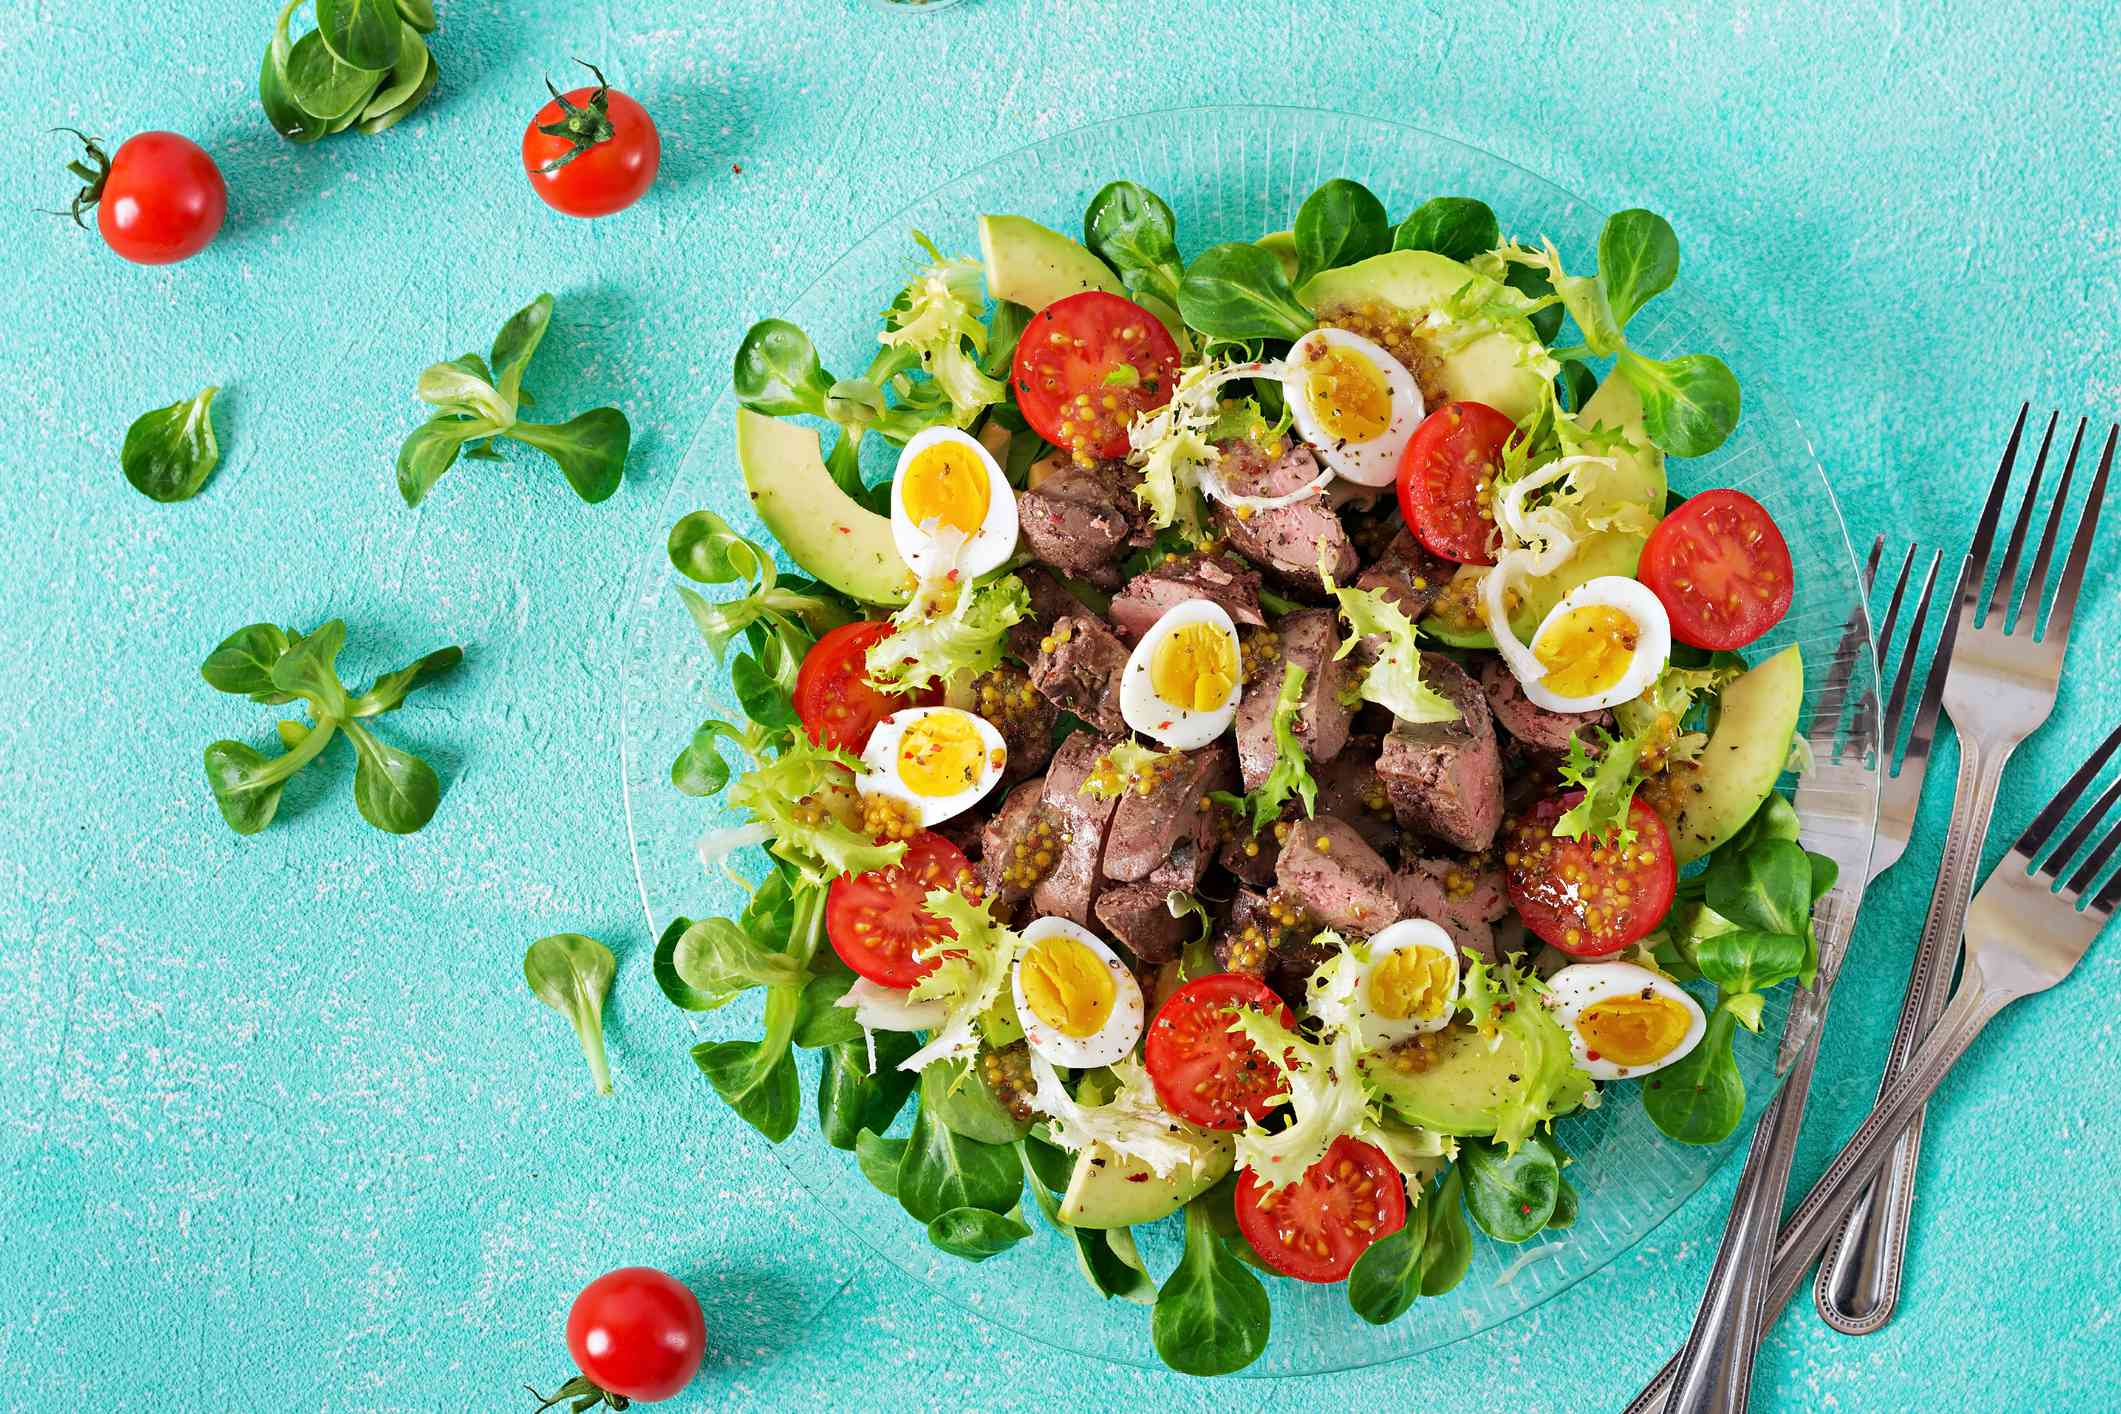 Warm salad from chicken liver, avocado, tomato, and quail eggs